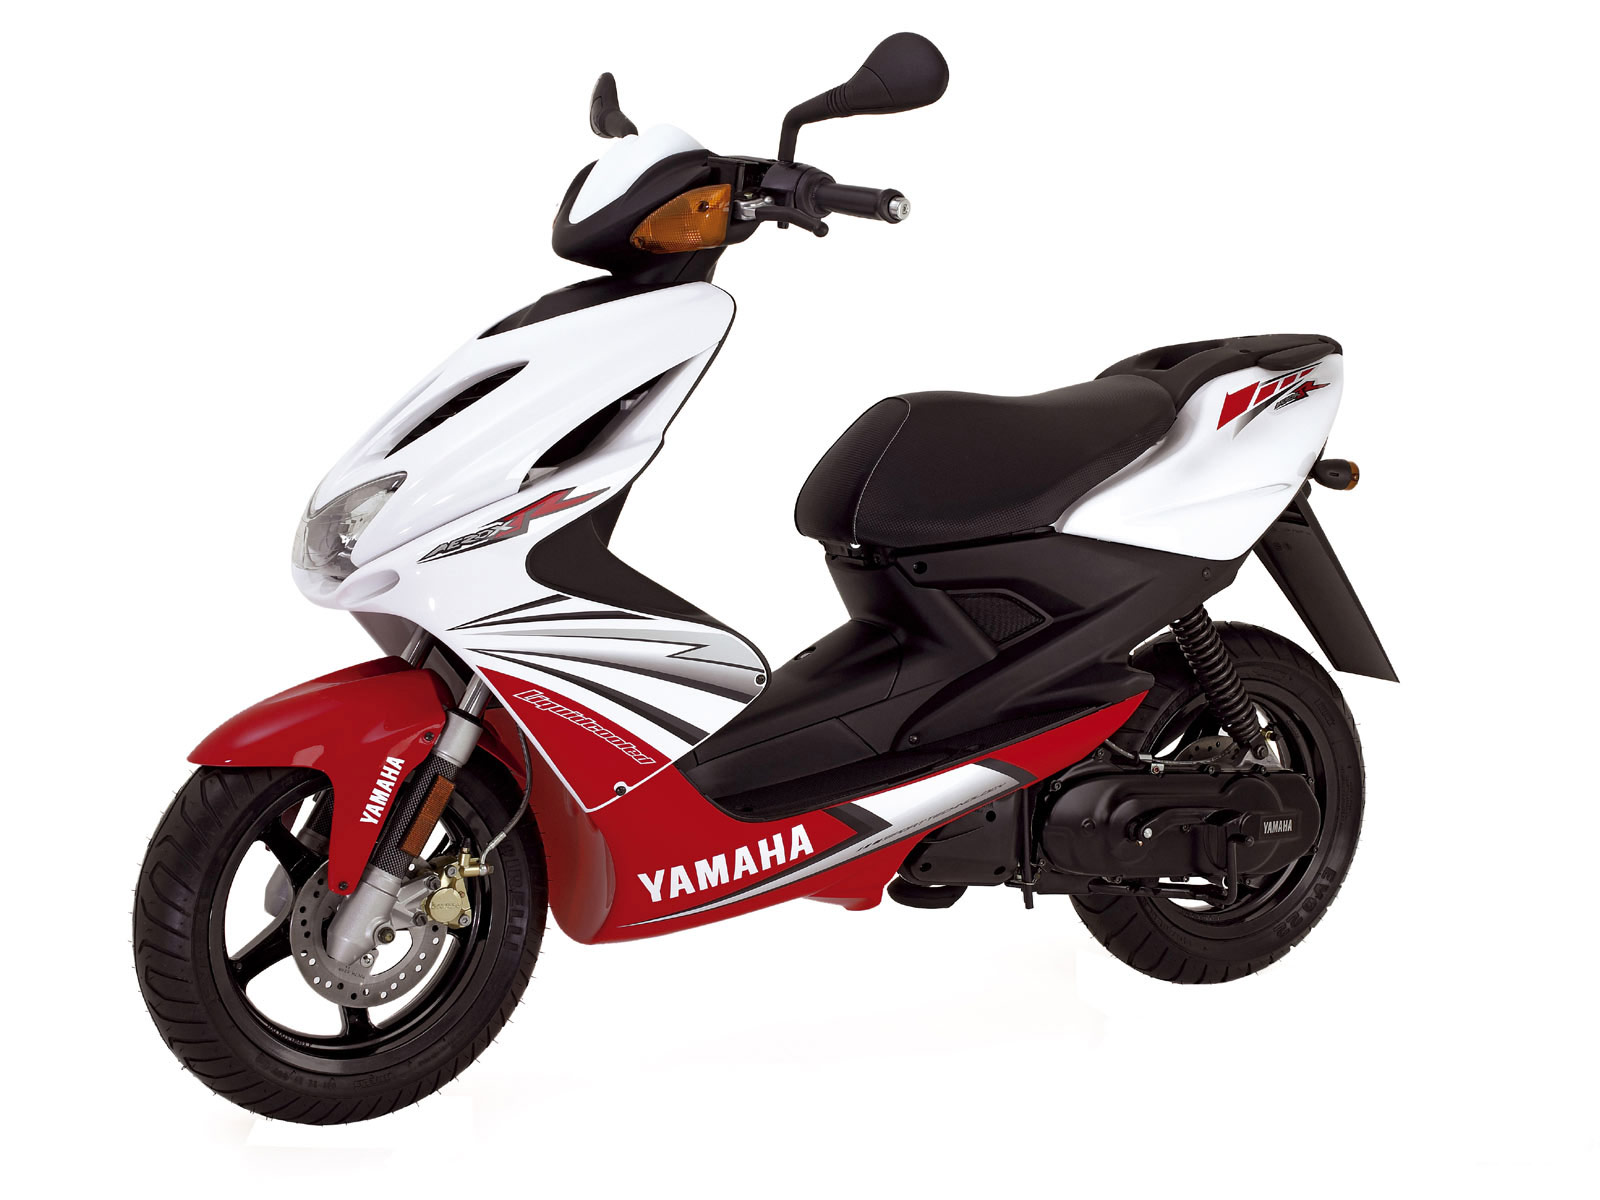 Yamaha R Dry Weight